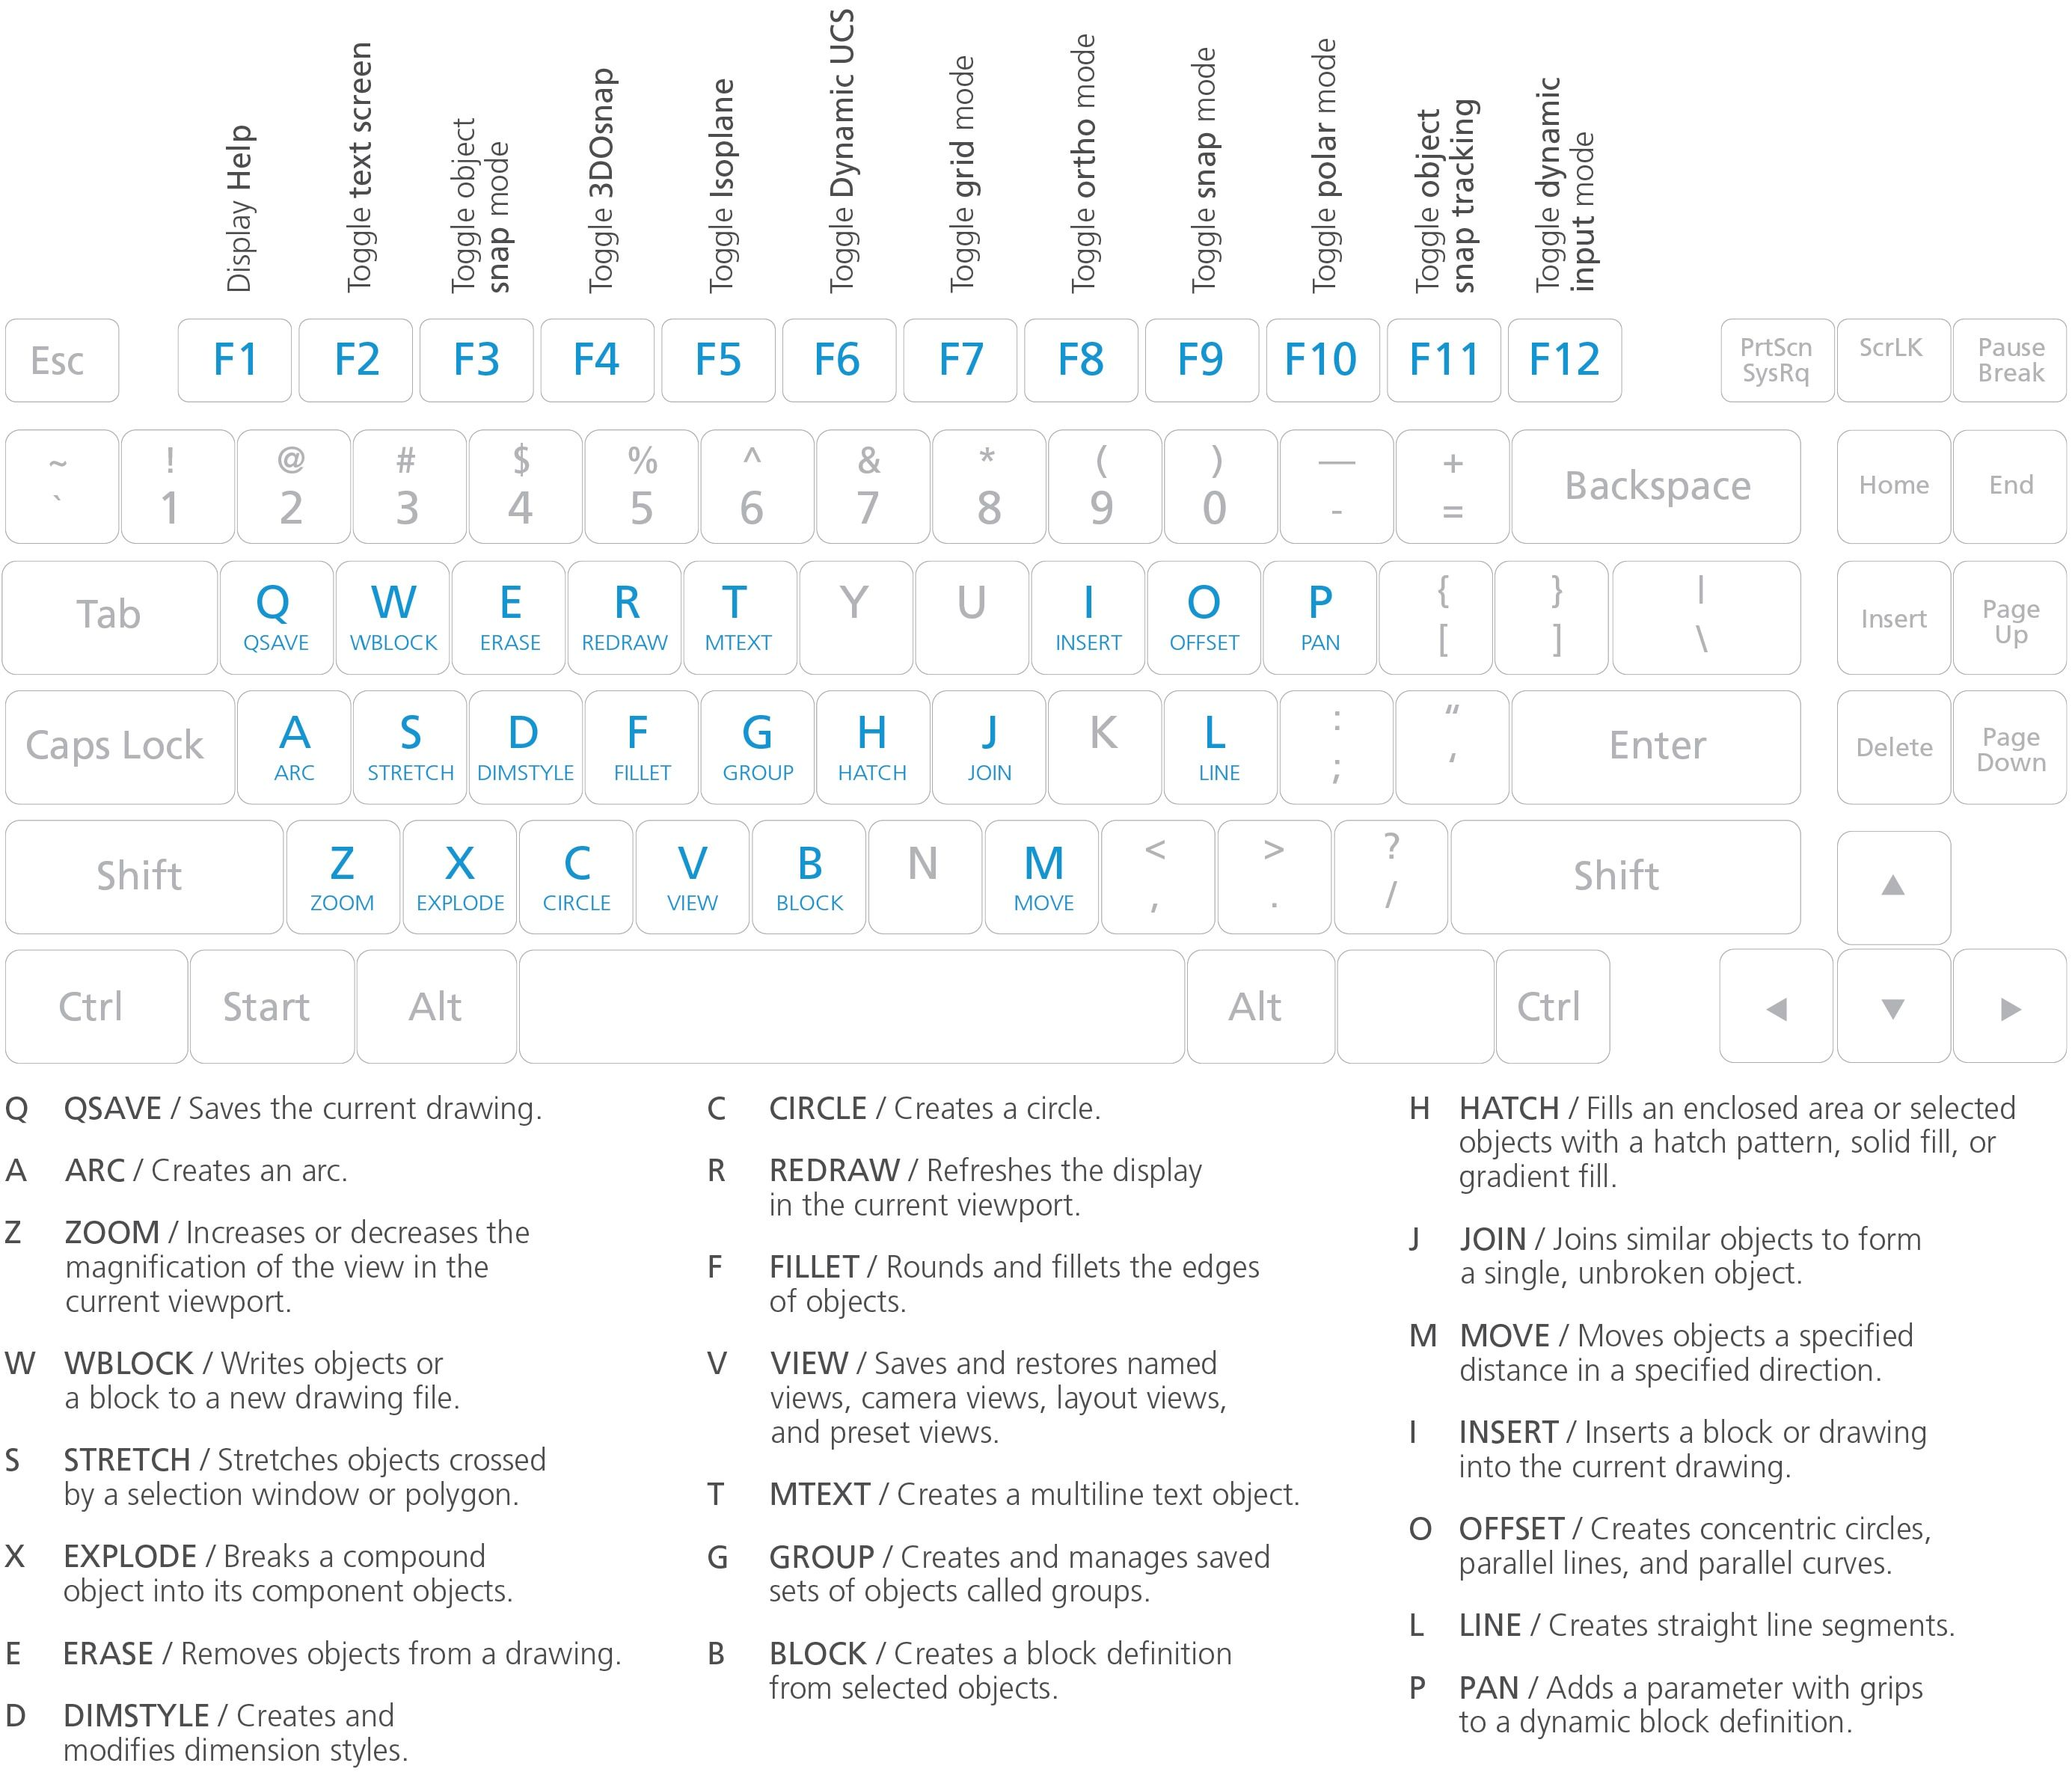 Autocad Keyboard Commands Shortcuts Guide With Images Learn